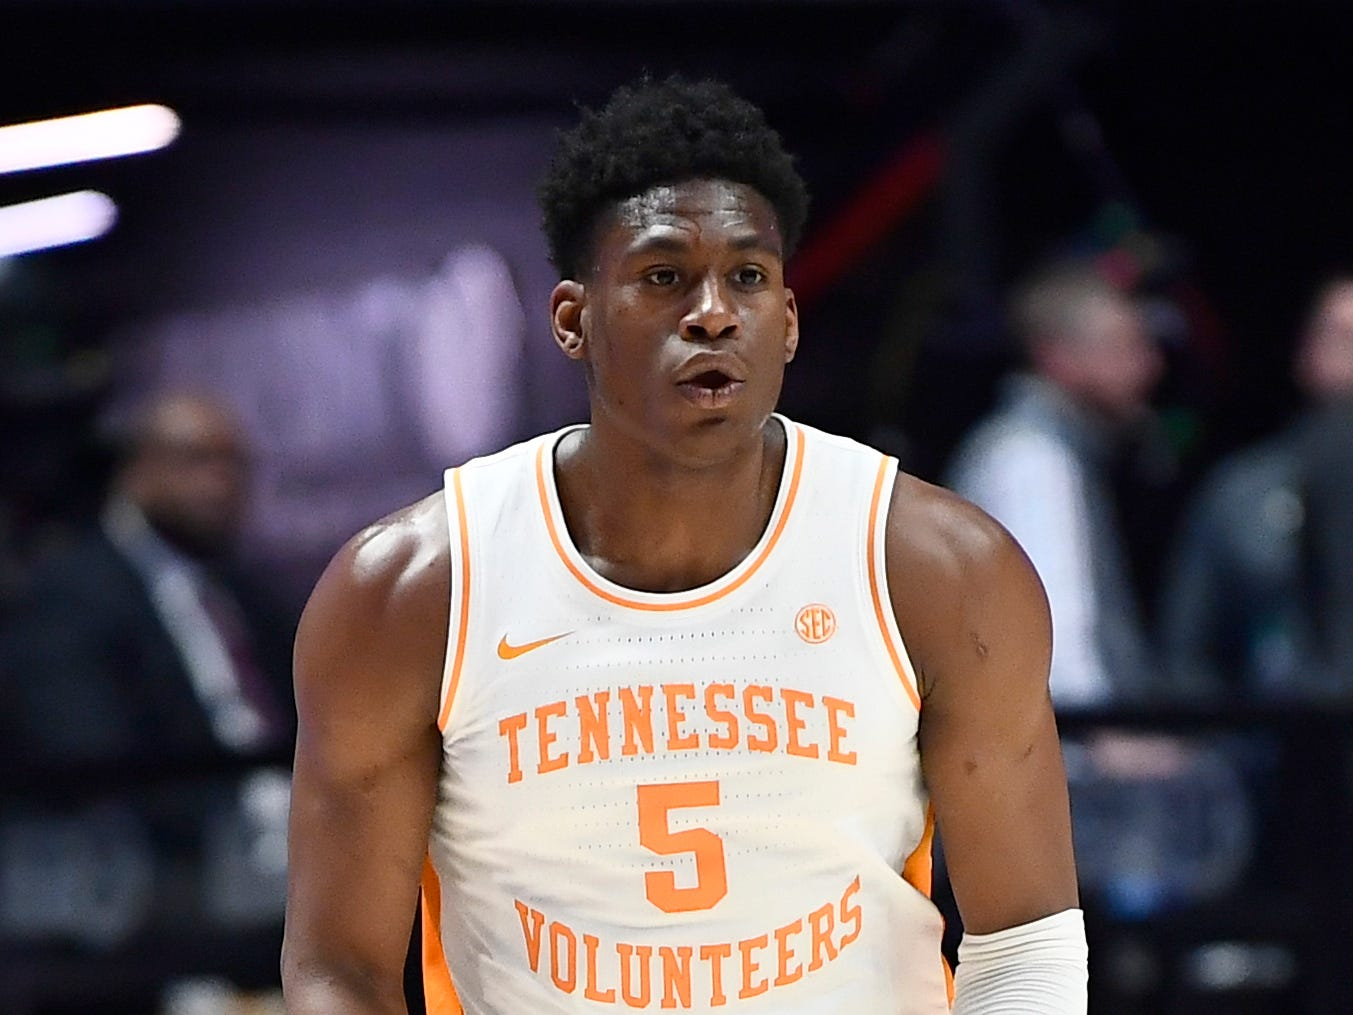 Kentucky basketball fans own Bridgestone, but Tennessee can ruin their SEC Tournament vacation